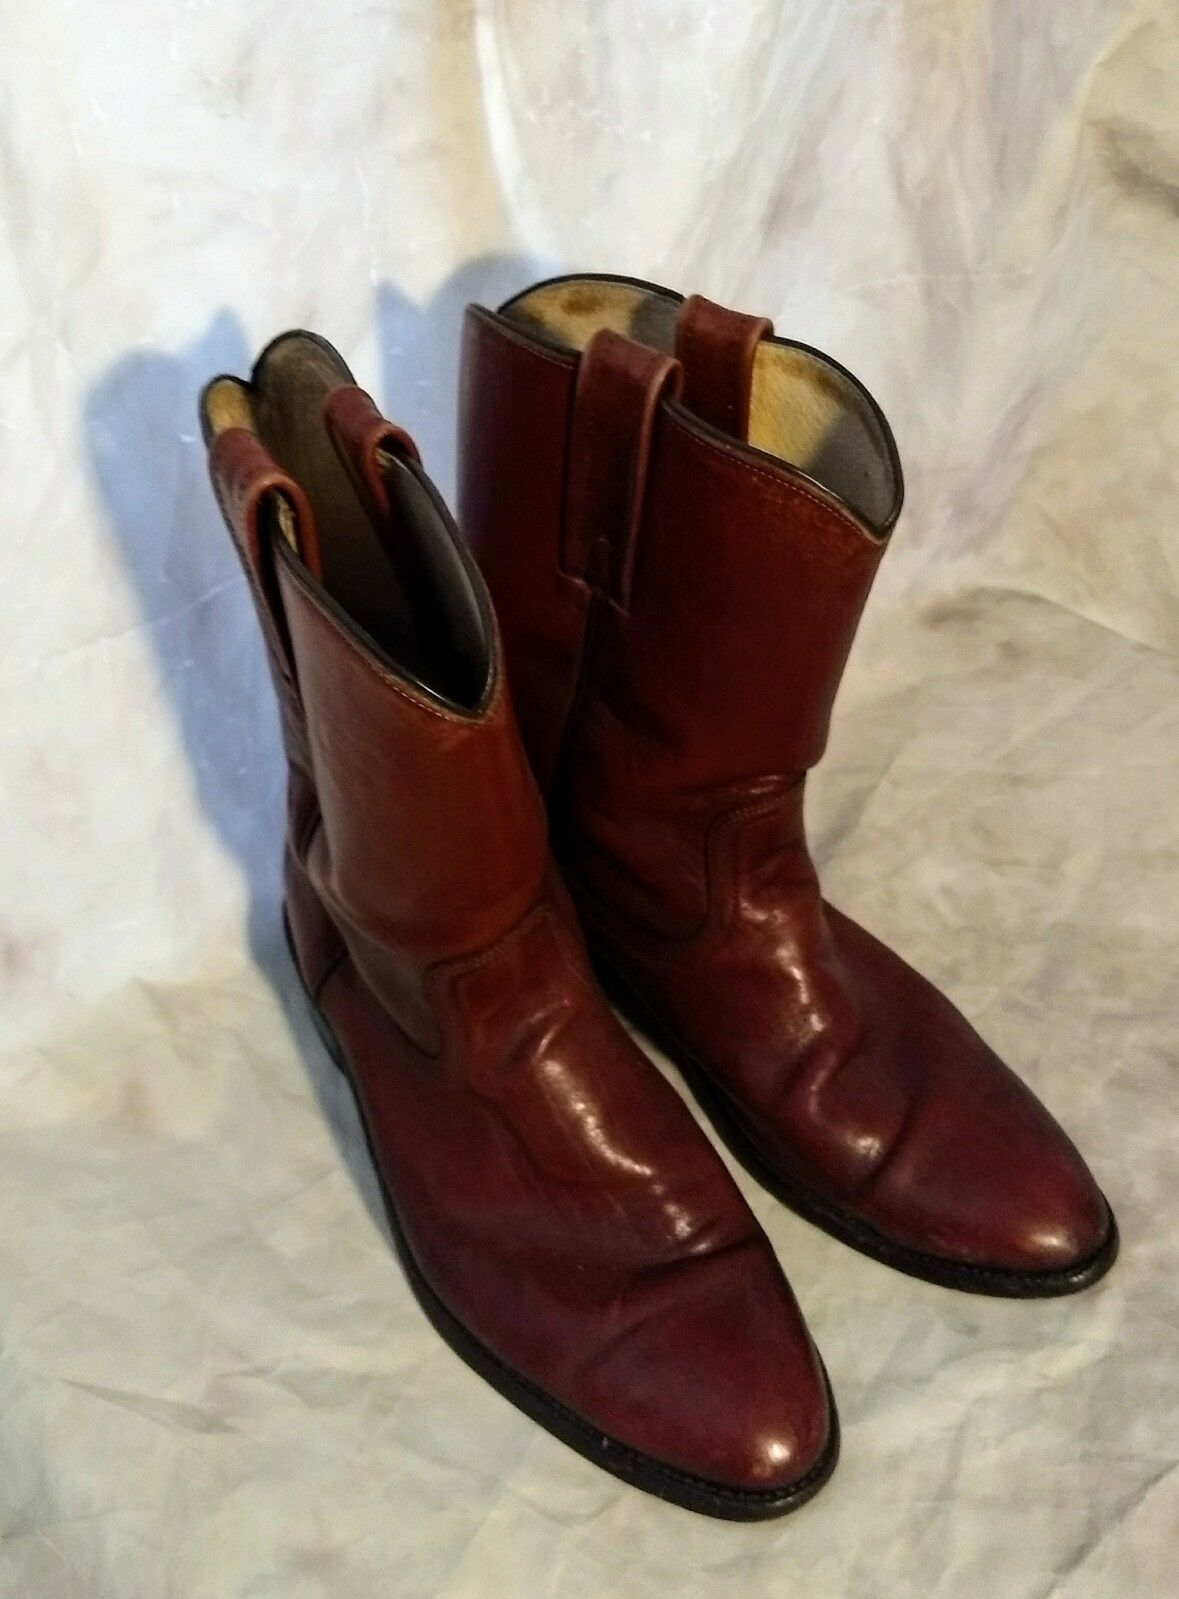 Ariat Brown Leather Cowboy Stockman Square Toe Buckaroo Cowboy Leather Boots Size 10 EE - 34824 7ffb10